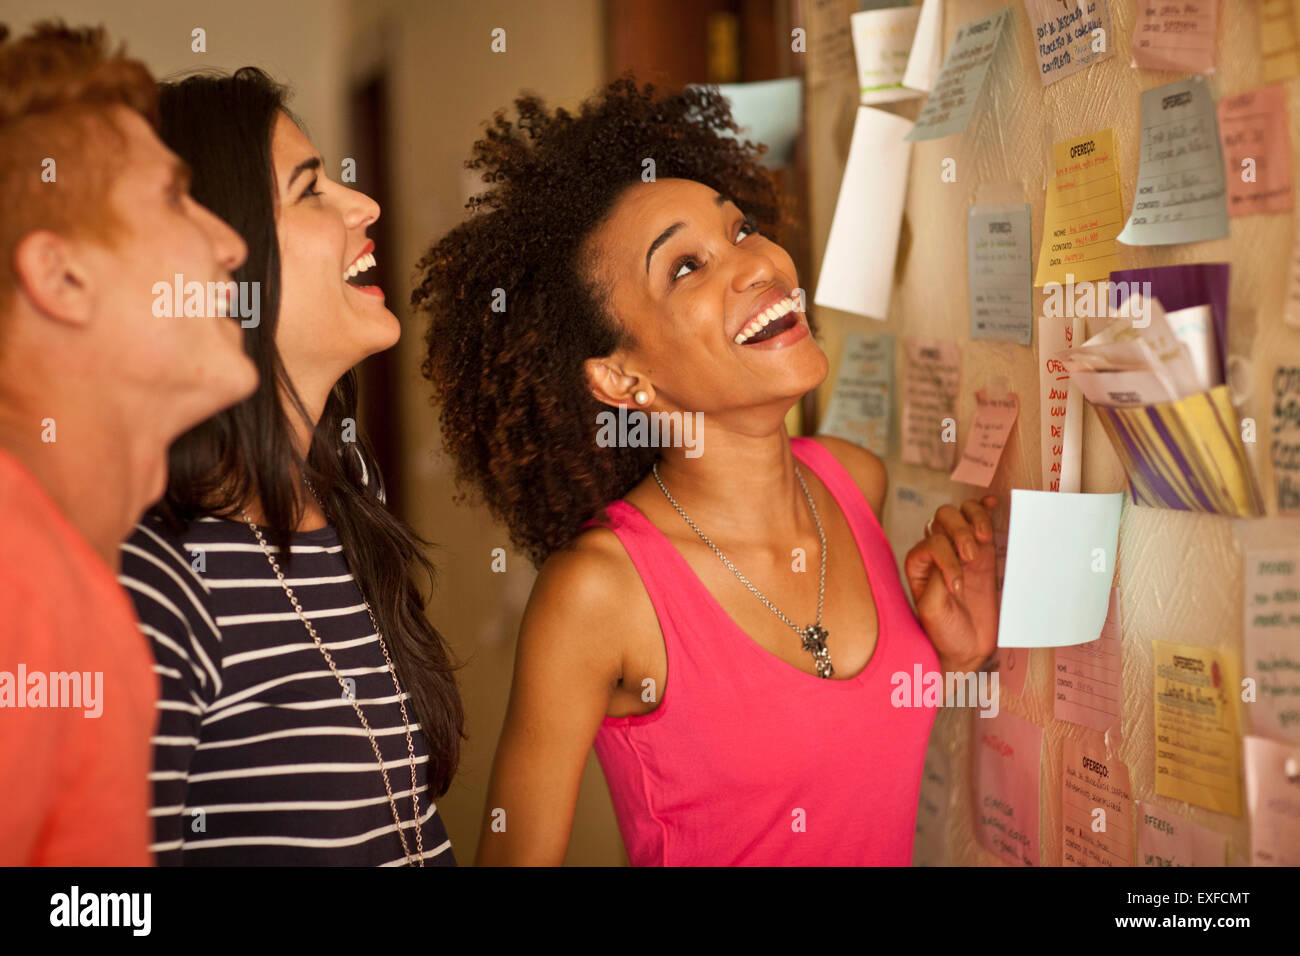 Students looking at notice board - Stock Image